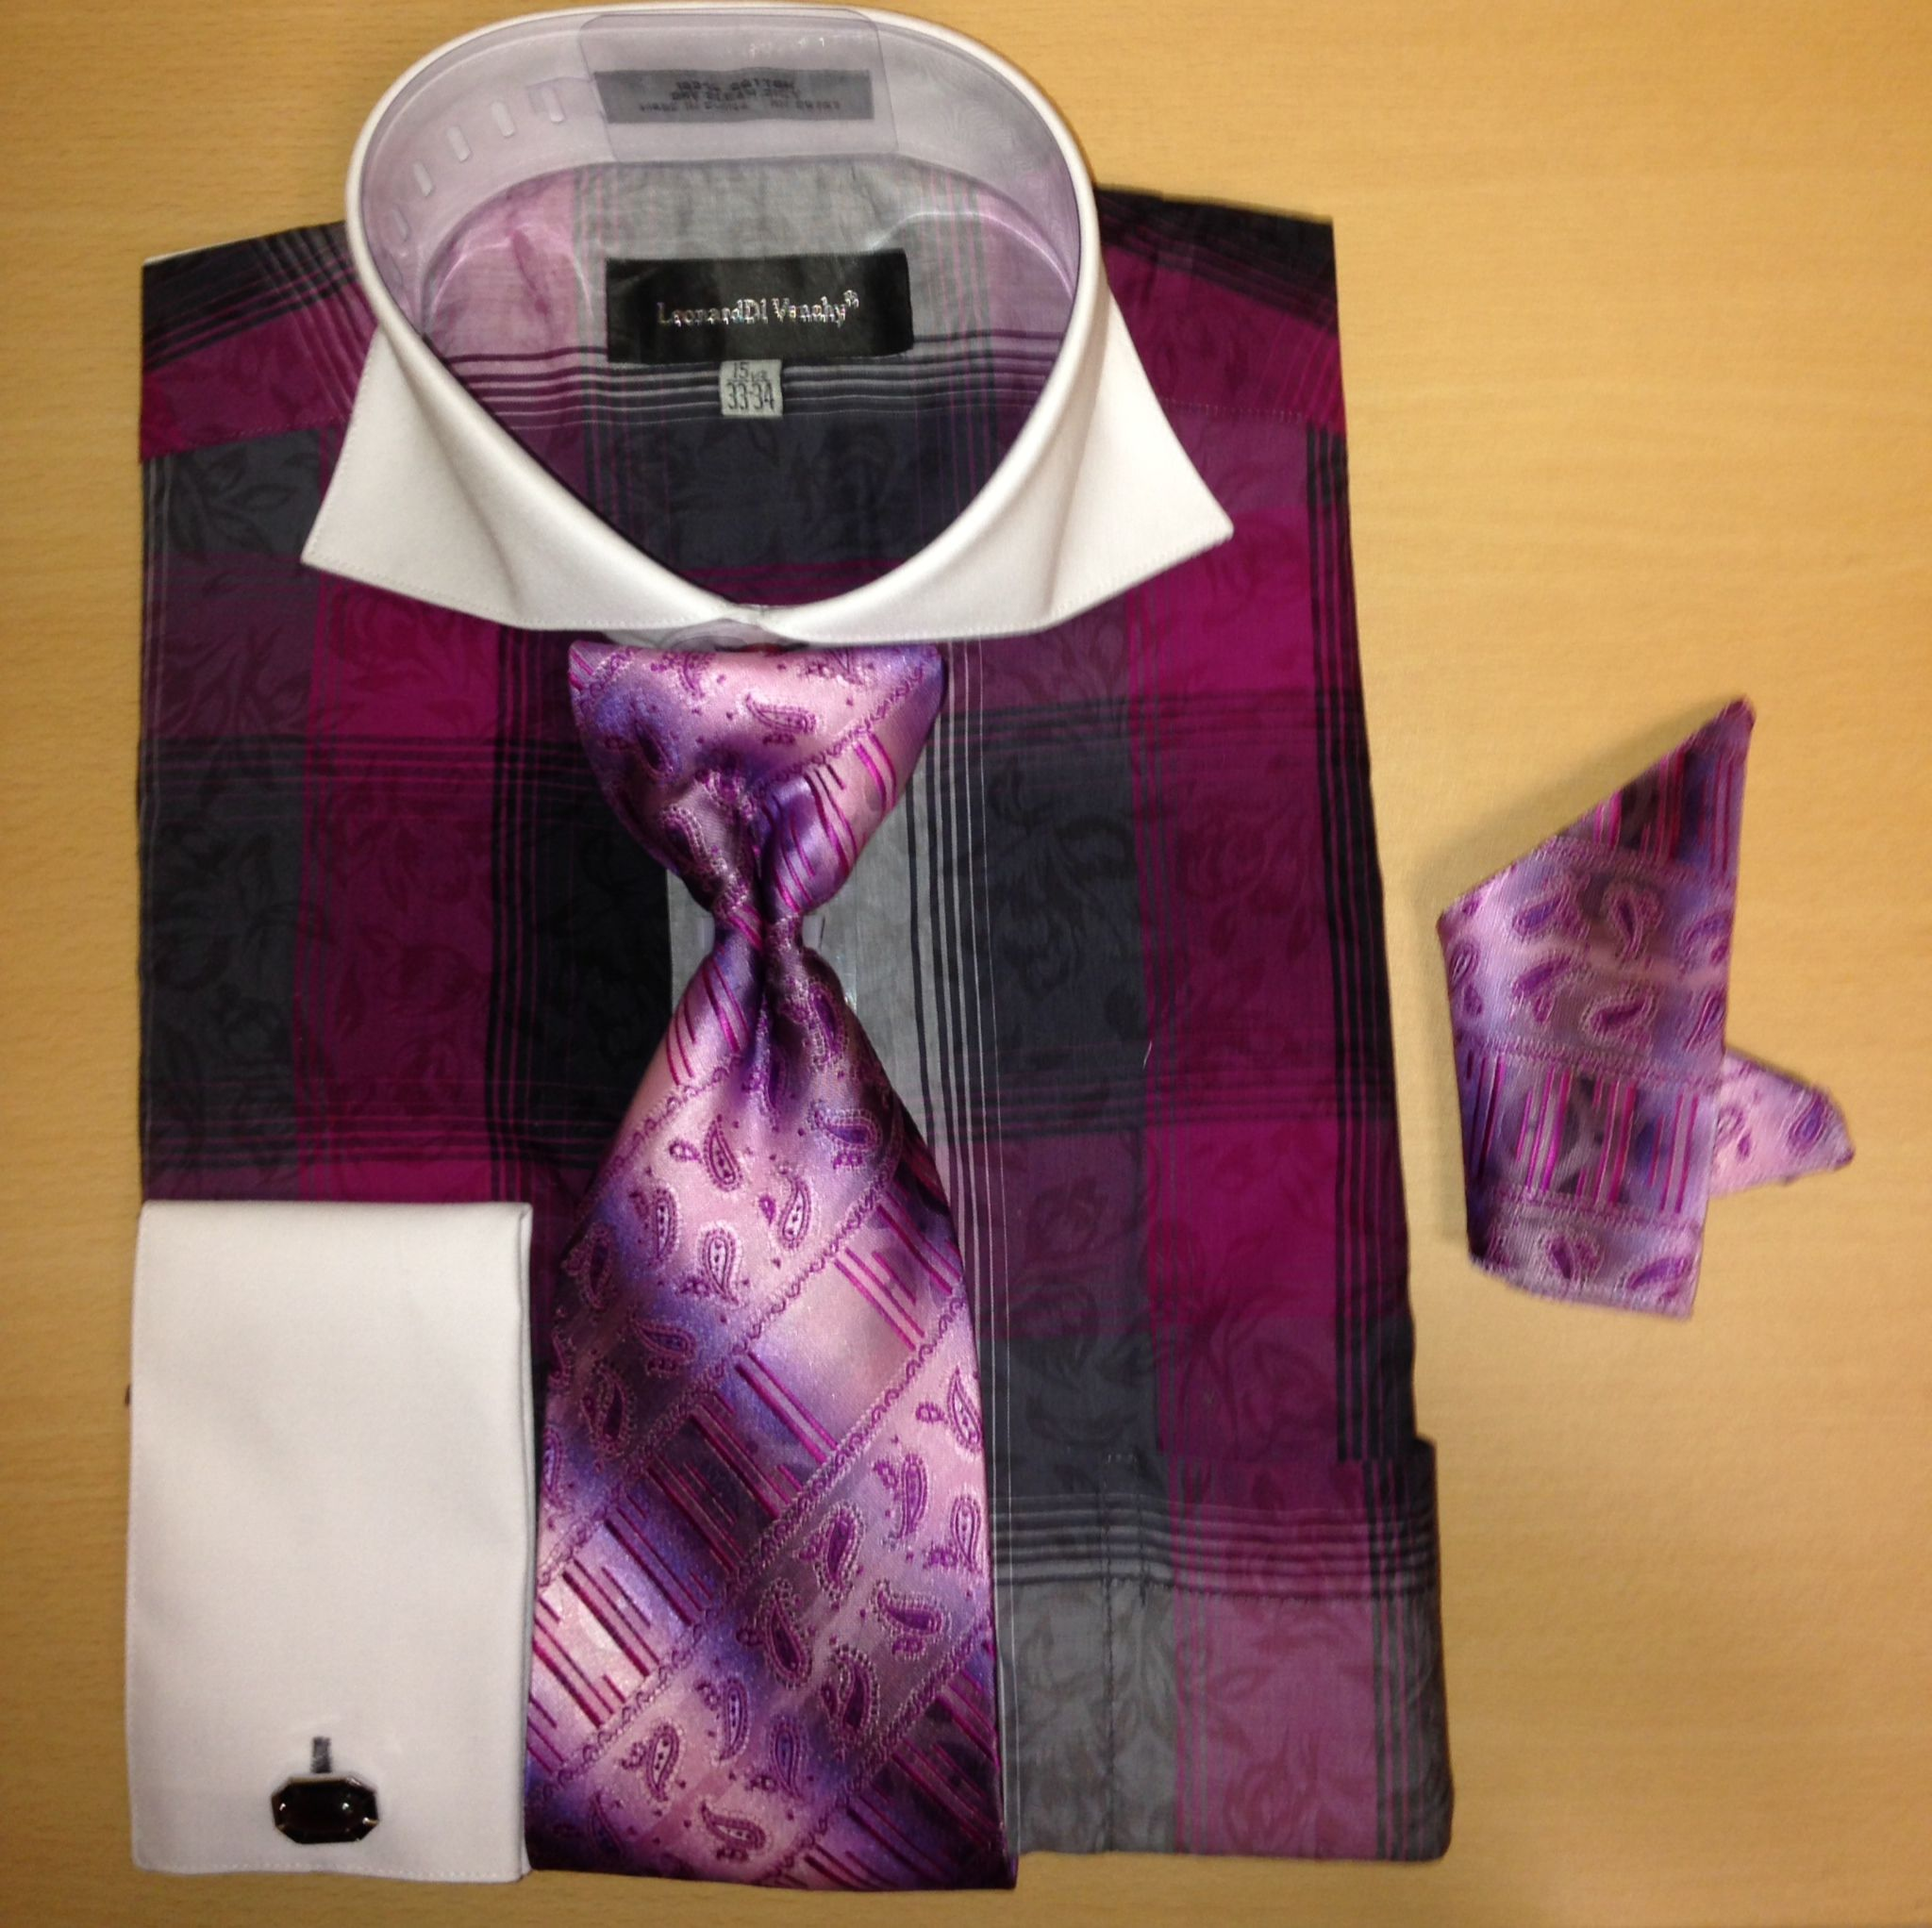 Men's Fashion Two-Tone w/ Paisley Mixture Cufflink Dress Shirt Set - Purple to Black